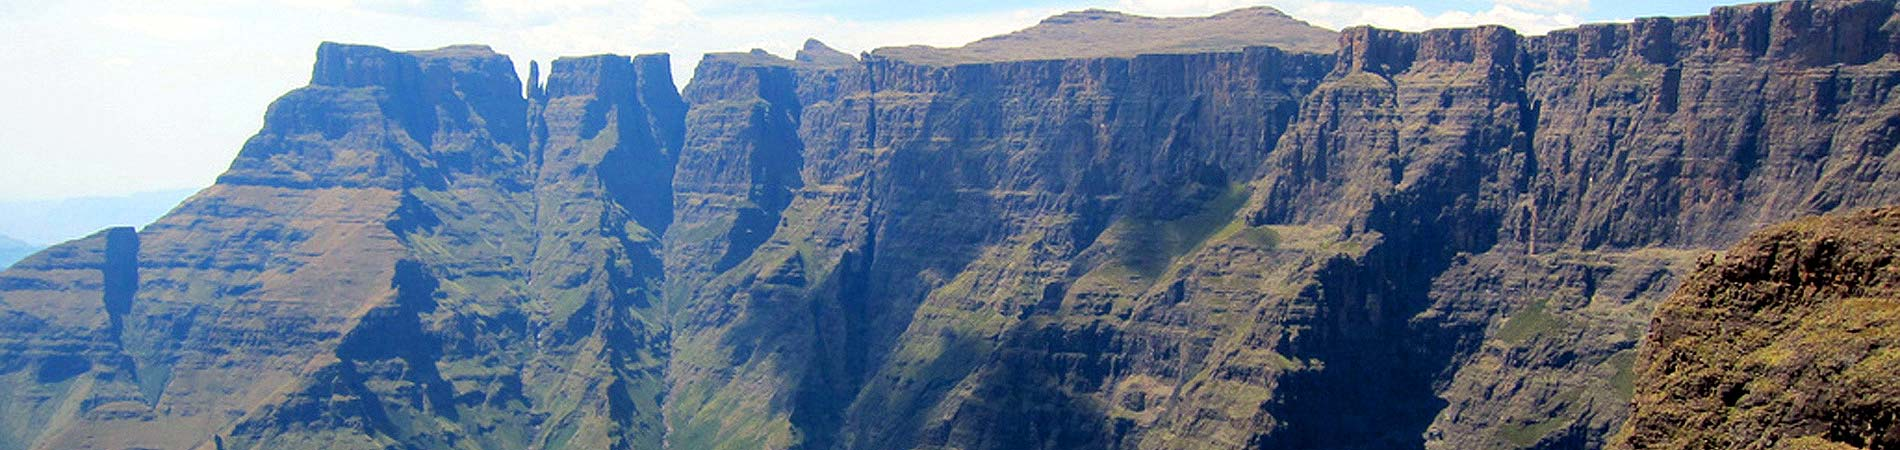 Mont aux sources drakensberg accommodation